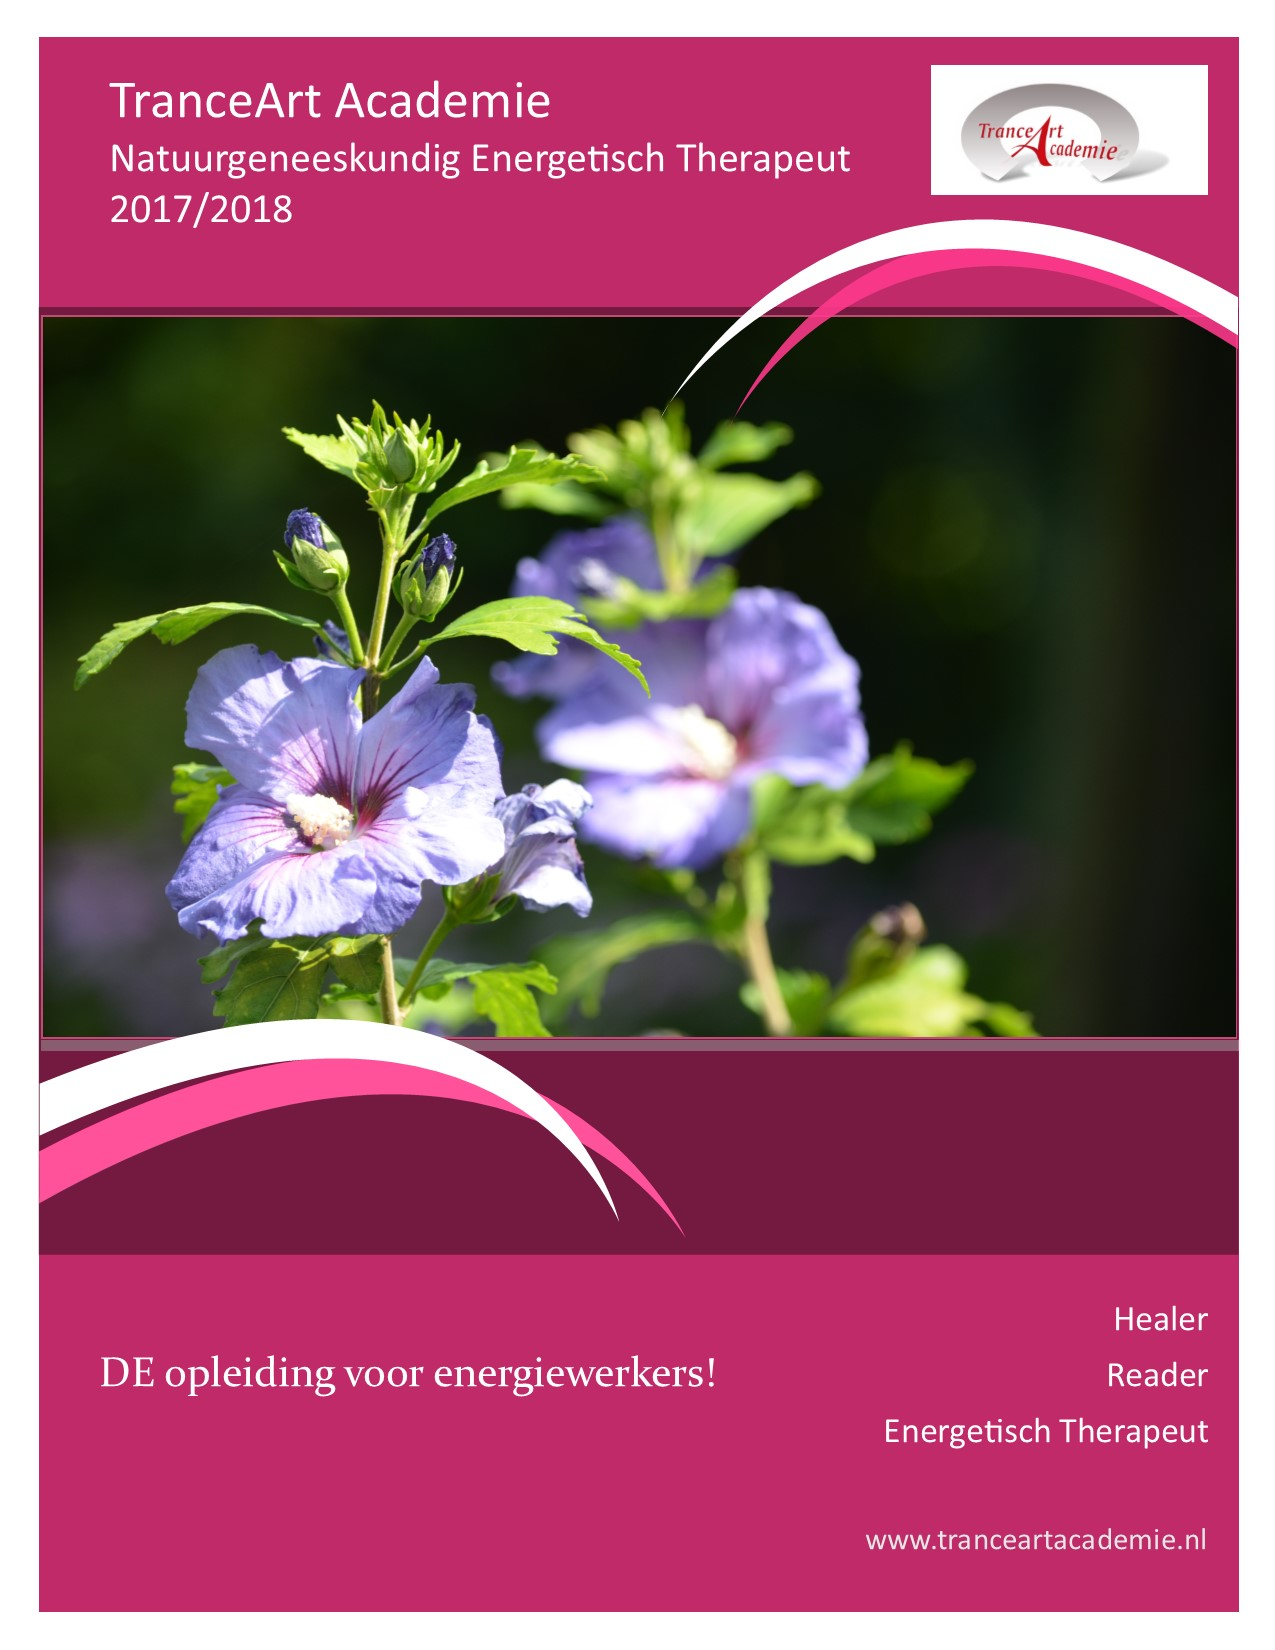 download de brochure voor Natuurgeneeskundig Energetisch Therapeut